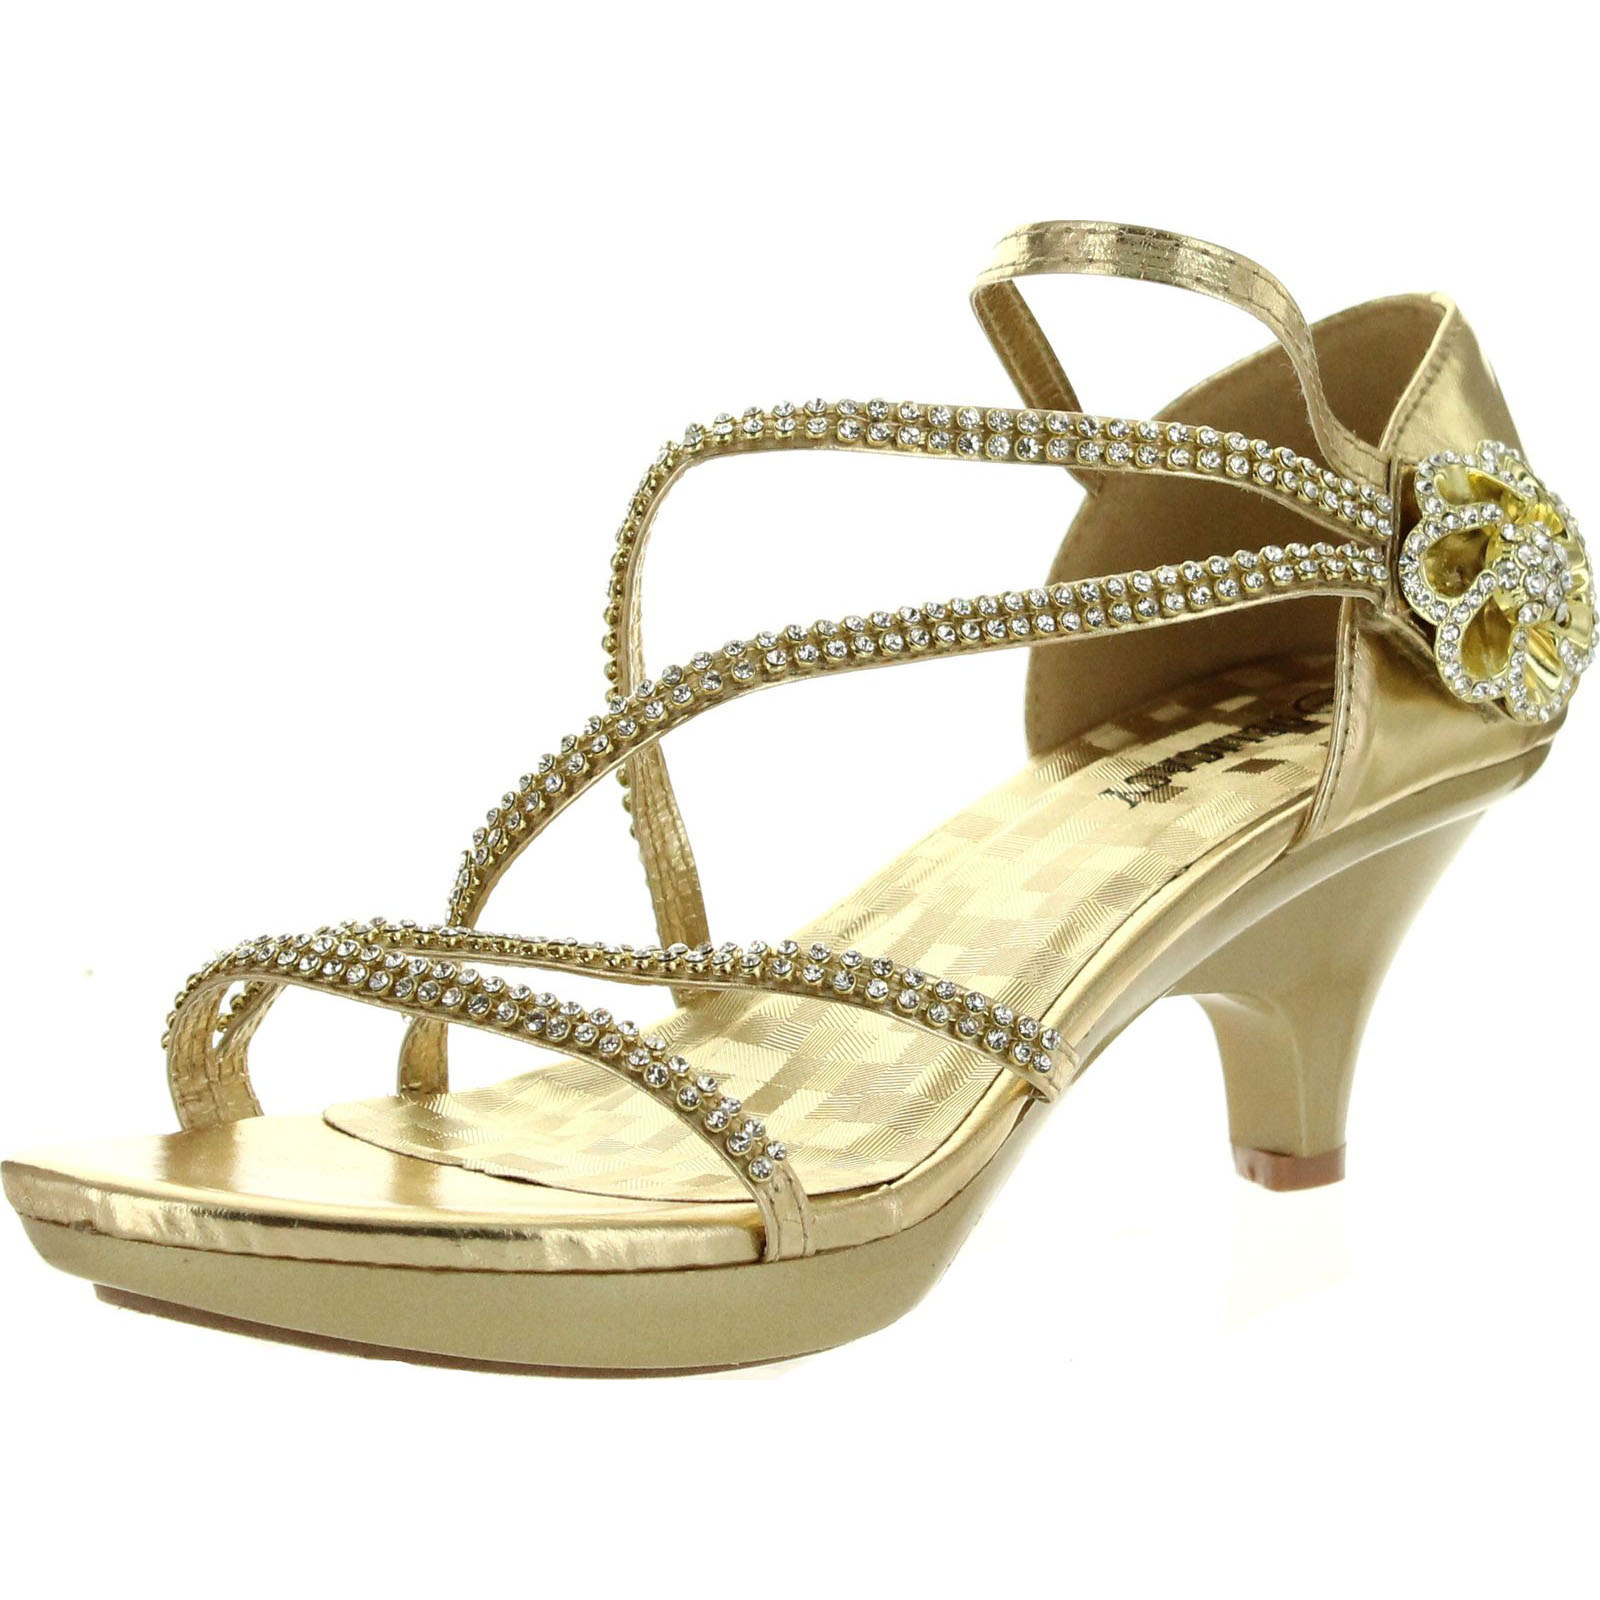 Delicacy Womens ANGEL48 Open Toe Rhinestones Med Low Heel Party Dress Sandal